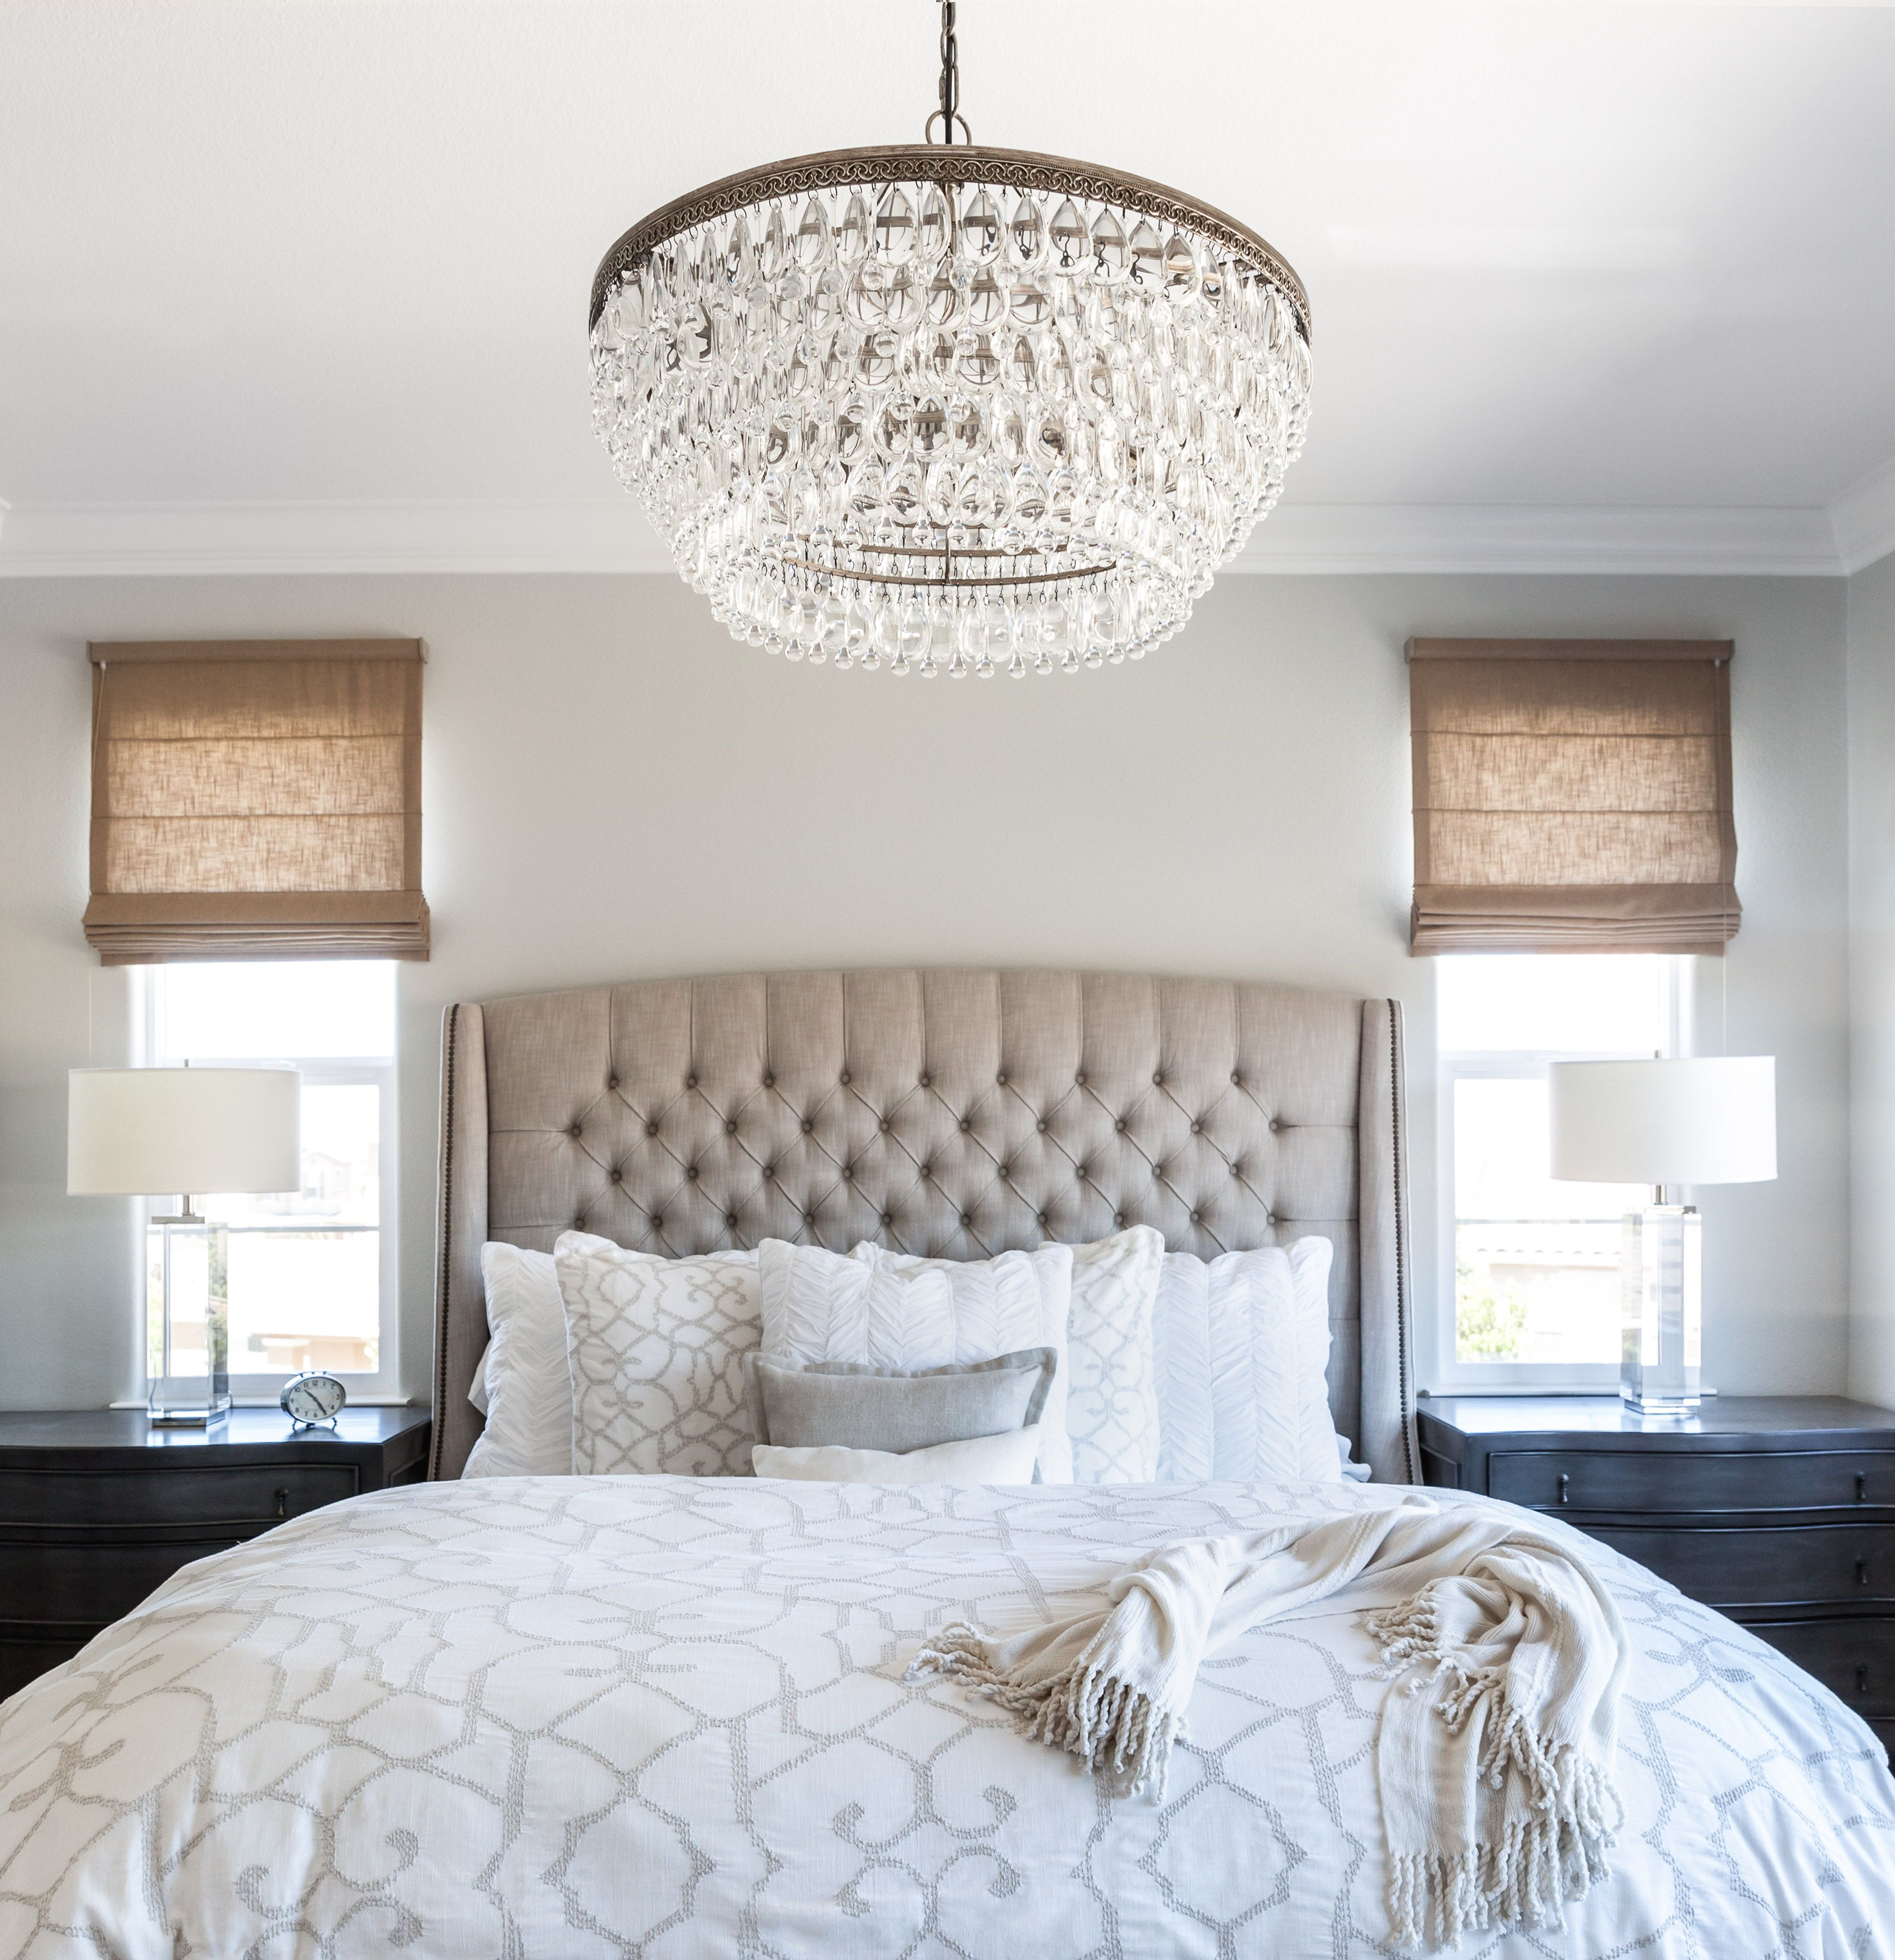 master bedroom linen bed roman shades cream bedding calming master bedroom gray walls tufted headboard crystal chandelier designer juxtaposed - Bedroom Chandelier